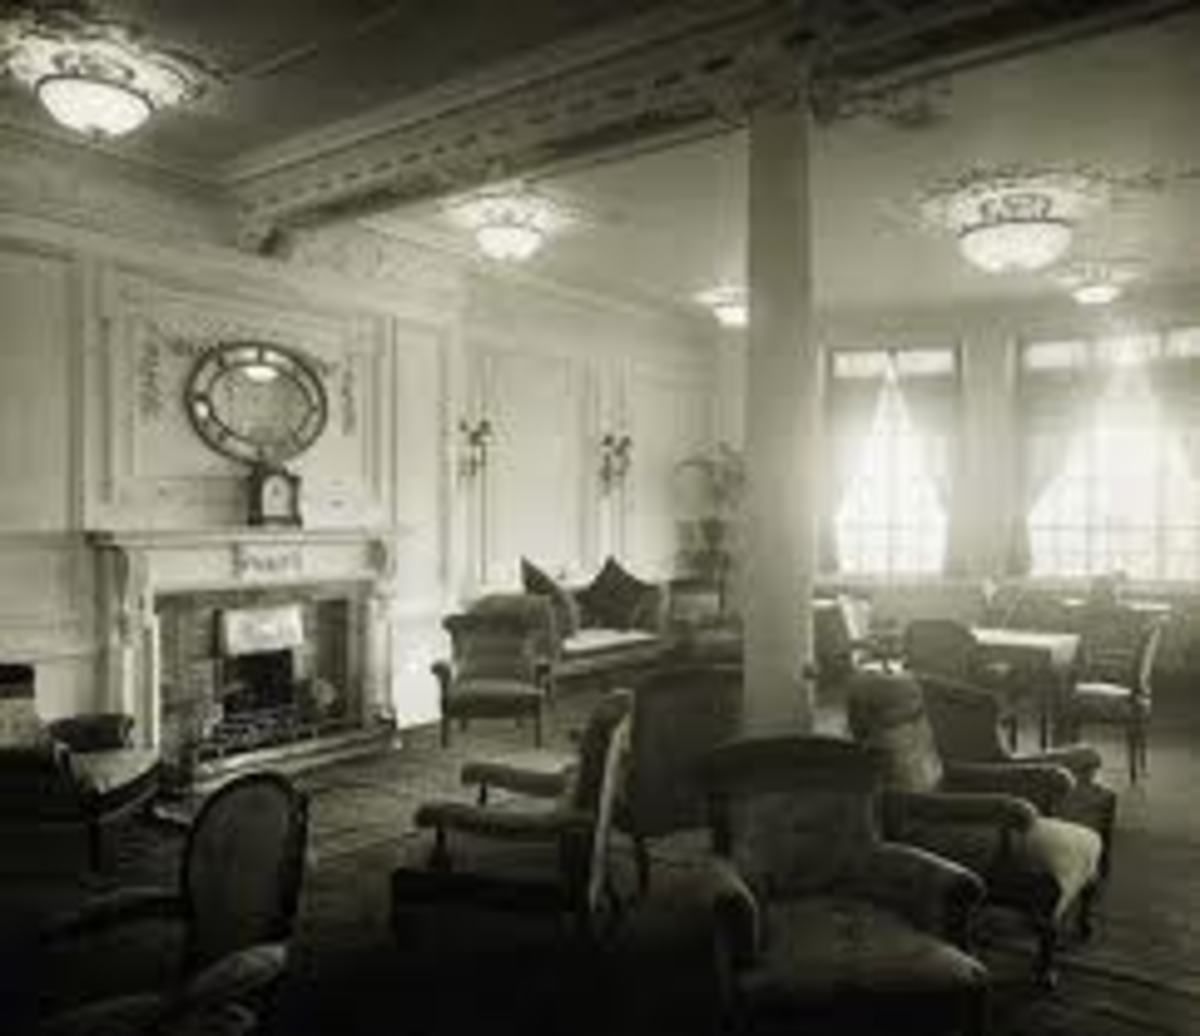 An elegant interior scene in the Titanic.